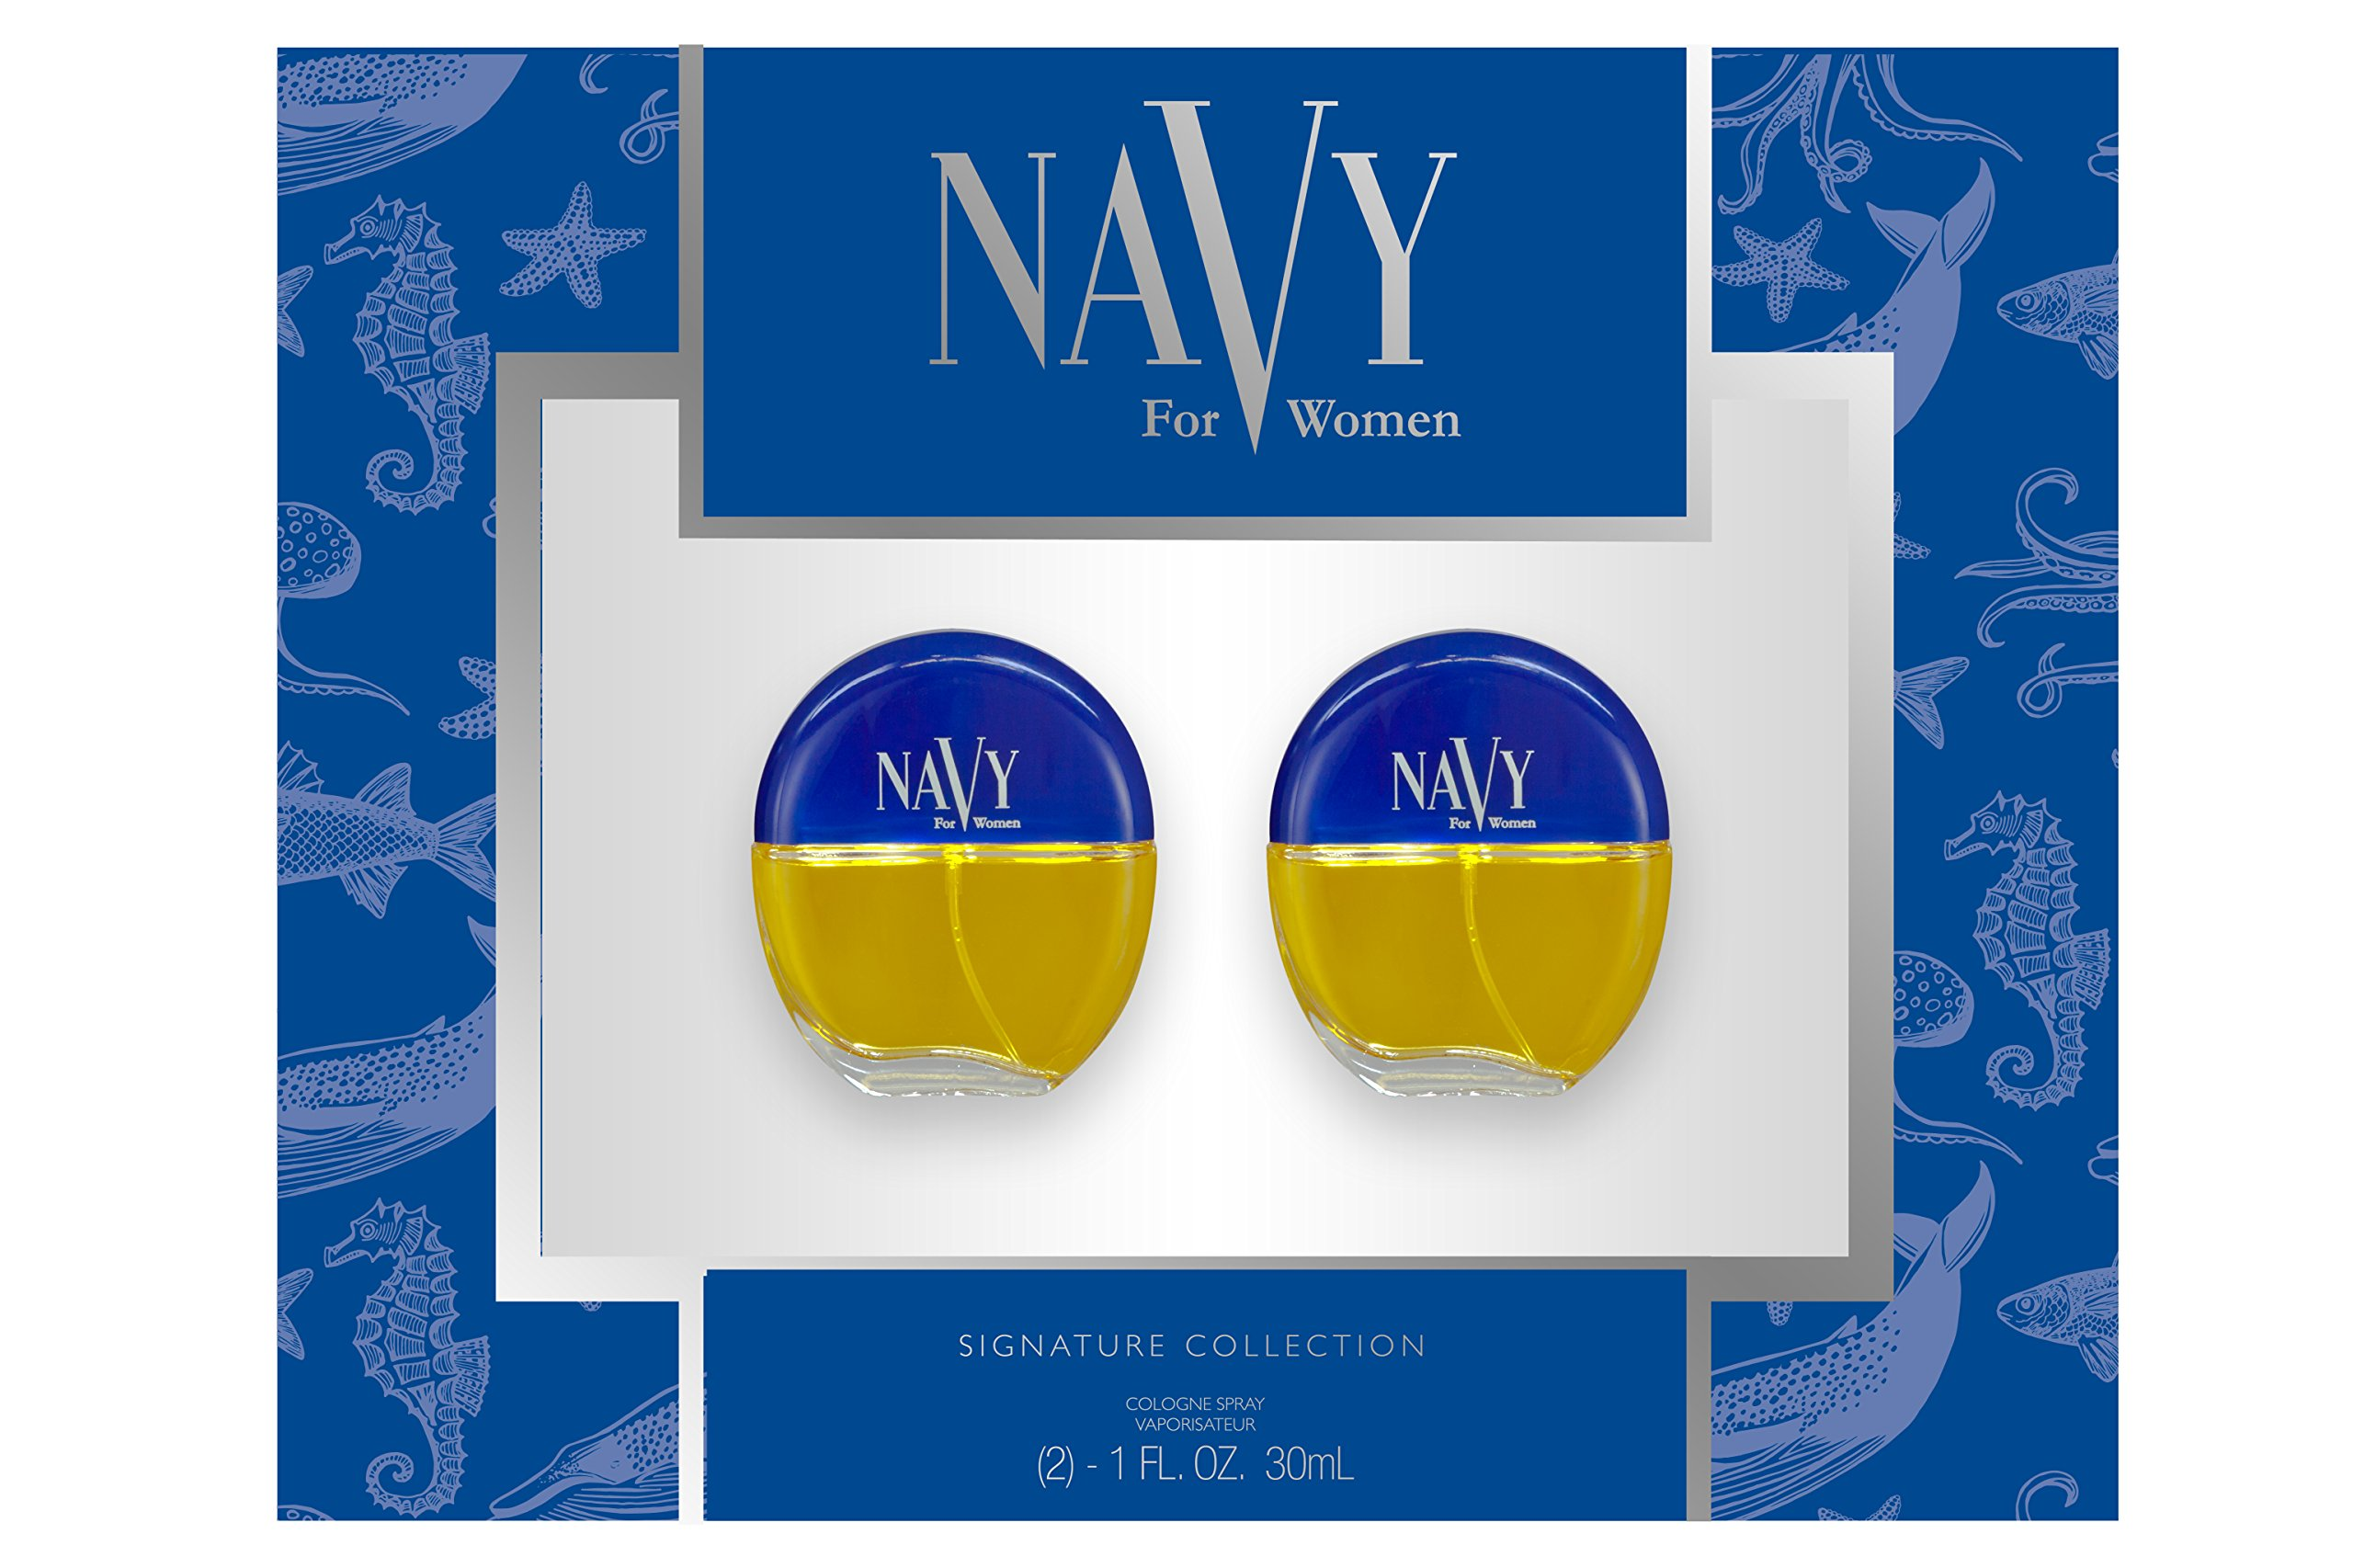 NAVY FOR WOMEN Signature Collection, 2 Count by Dana (Image #2)